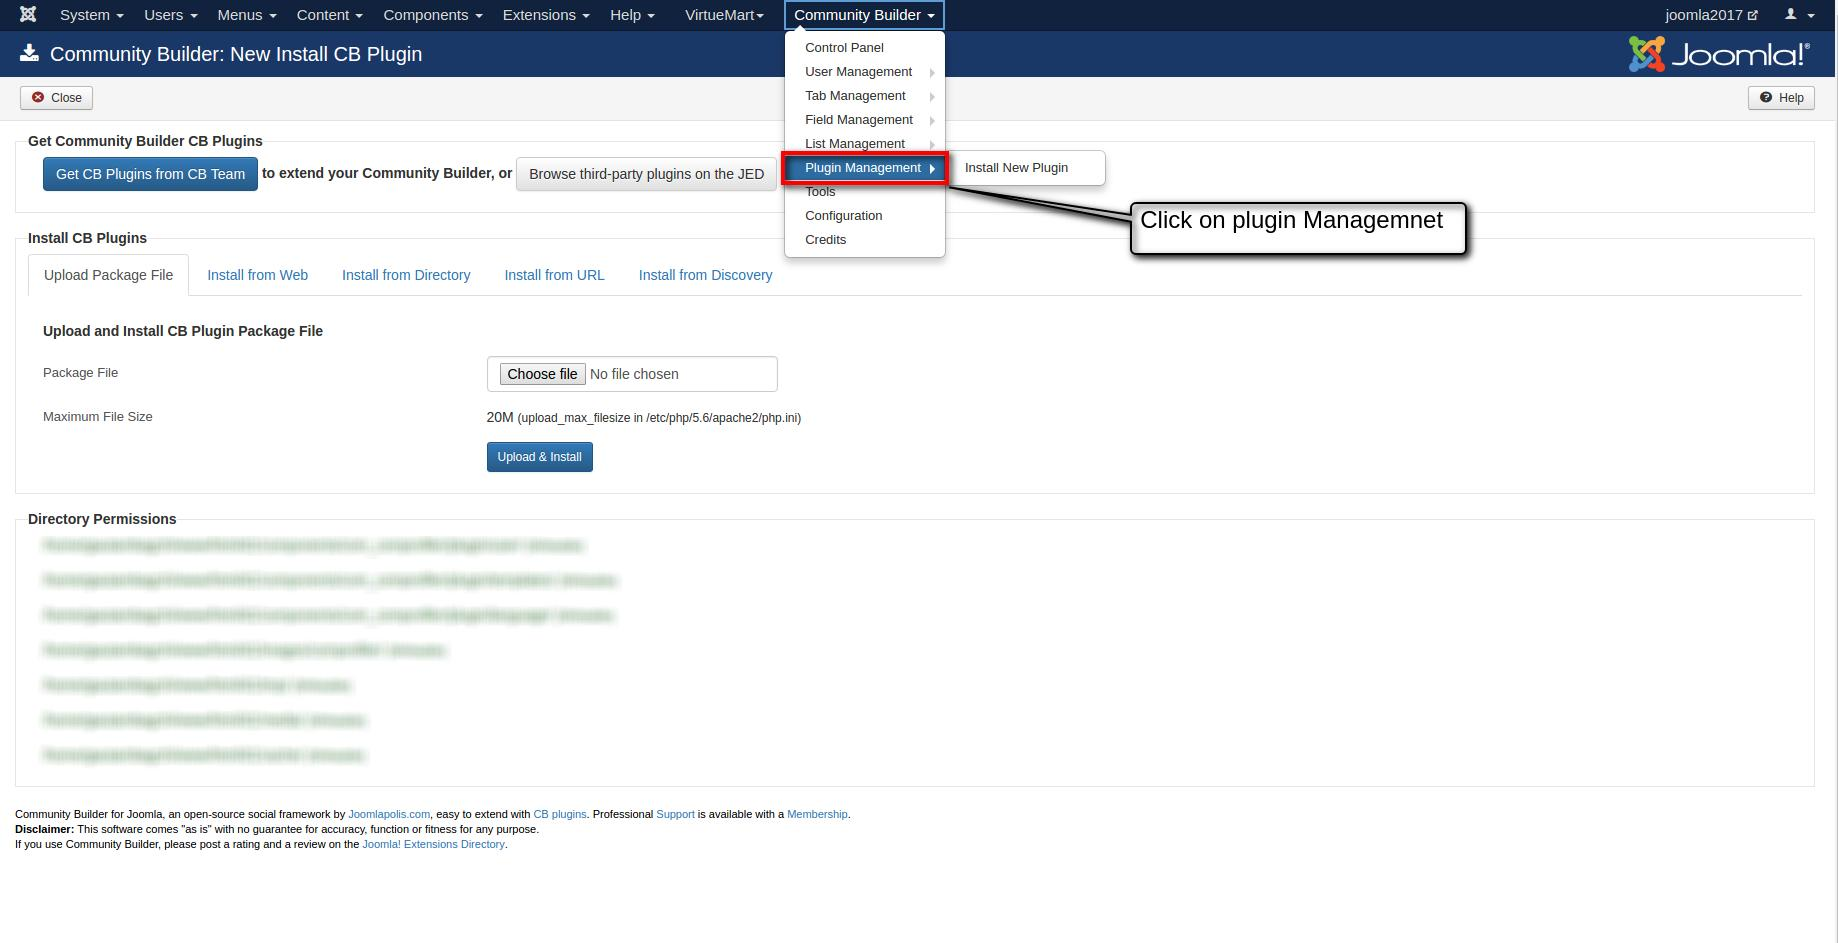 Click on plugin management